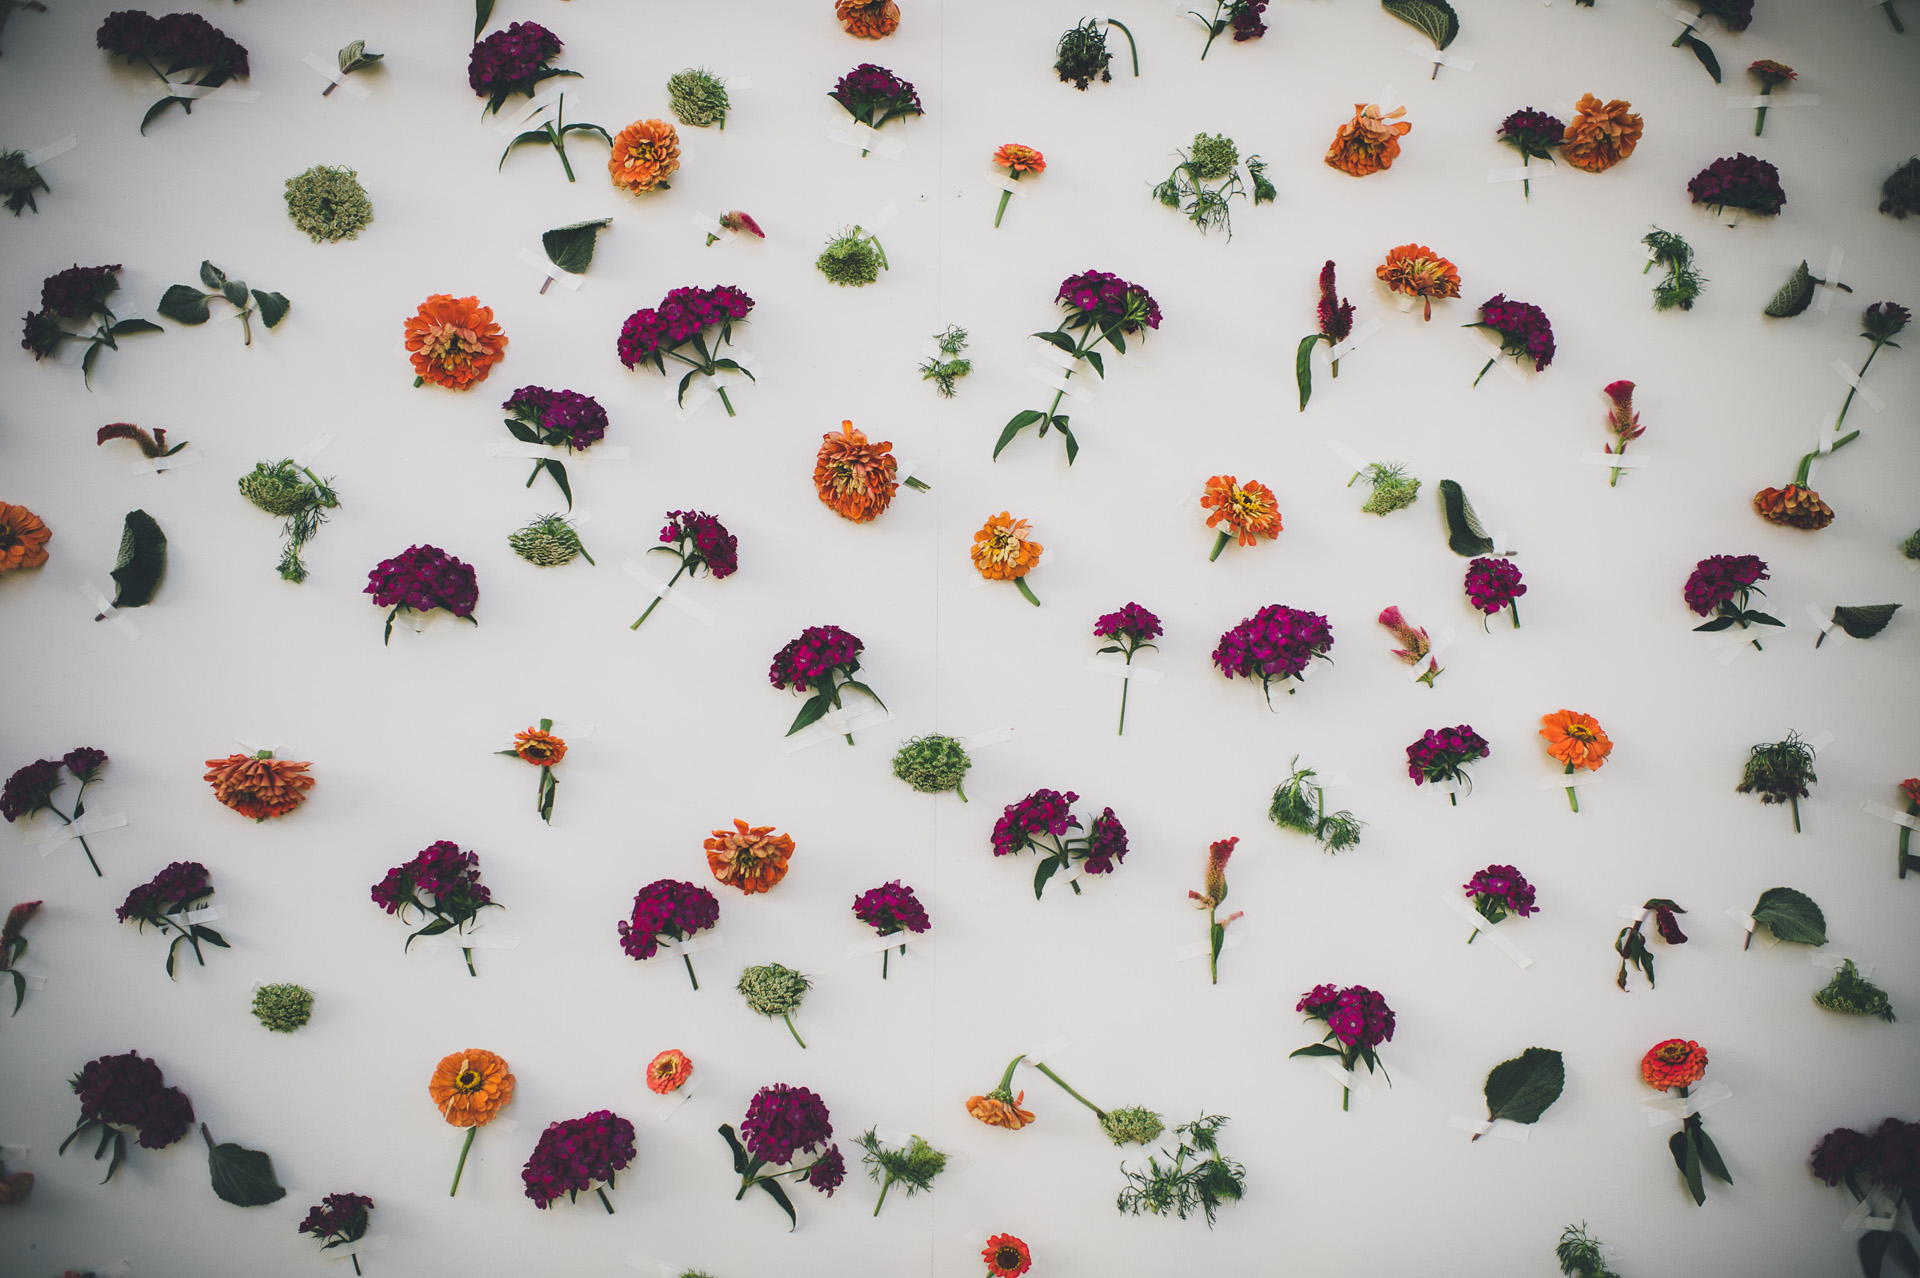 live flowers photo booth backdrop